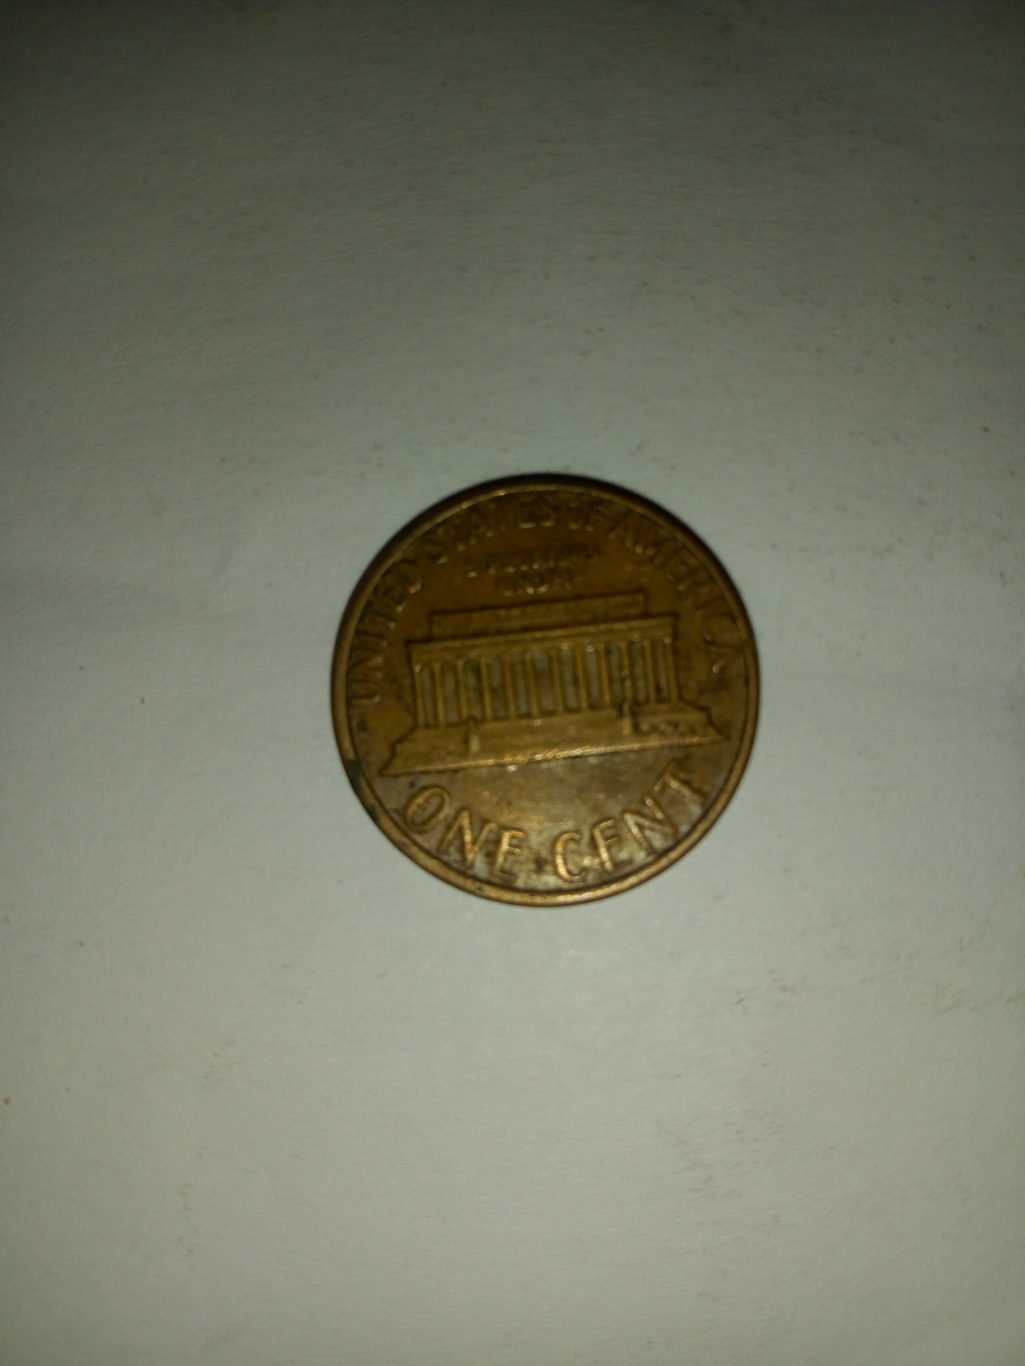 1979_united States of america 1 cent